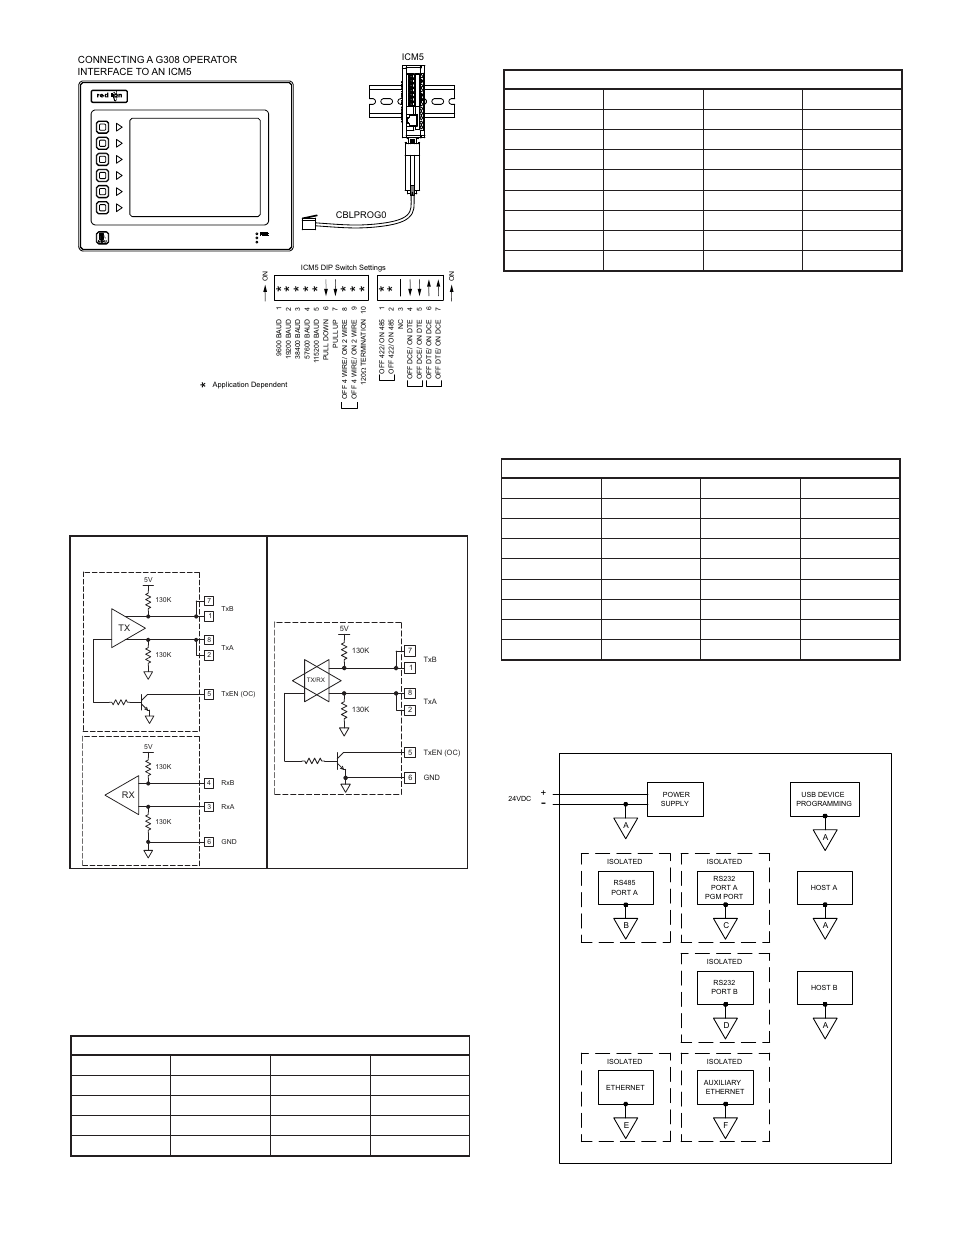 hight resolution of examples of rs485 2 wire connections dh485 communications g3 to modular controller